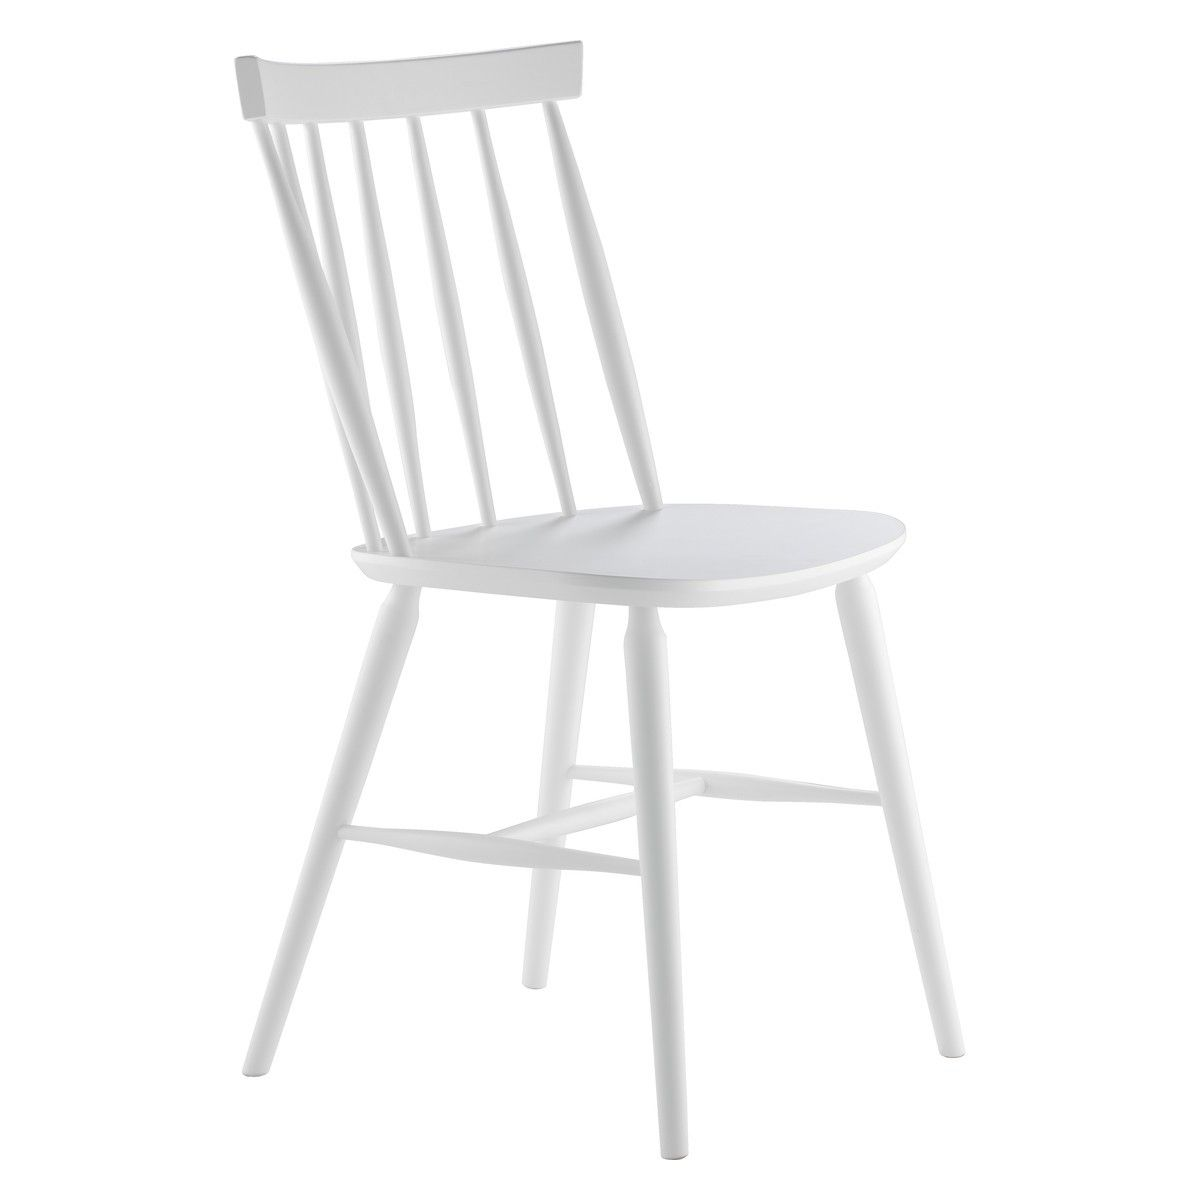 kitchen dining chairs TALIA White dining chair Buy now at Habitat UK